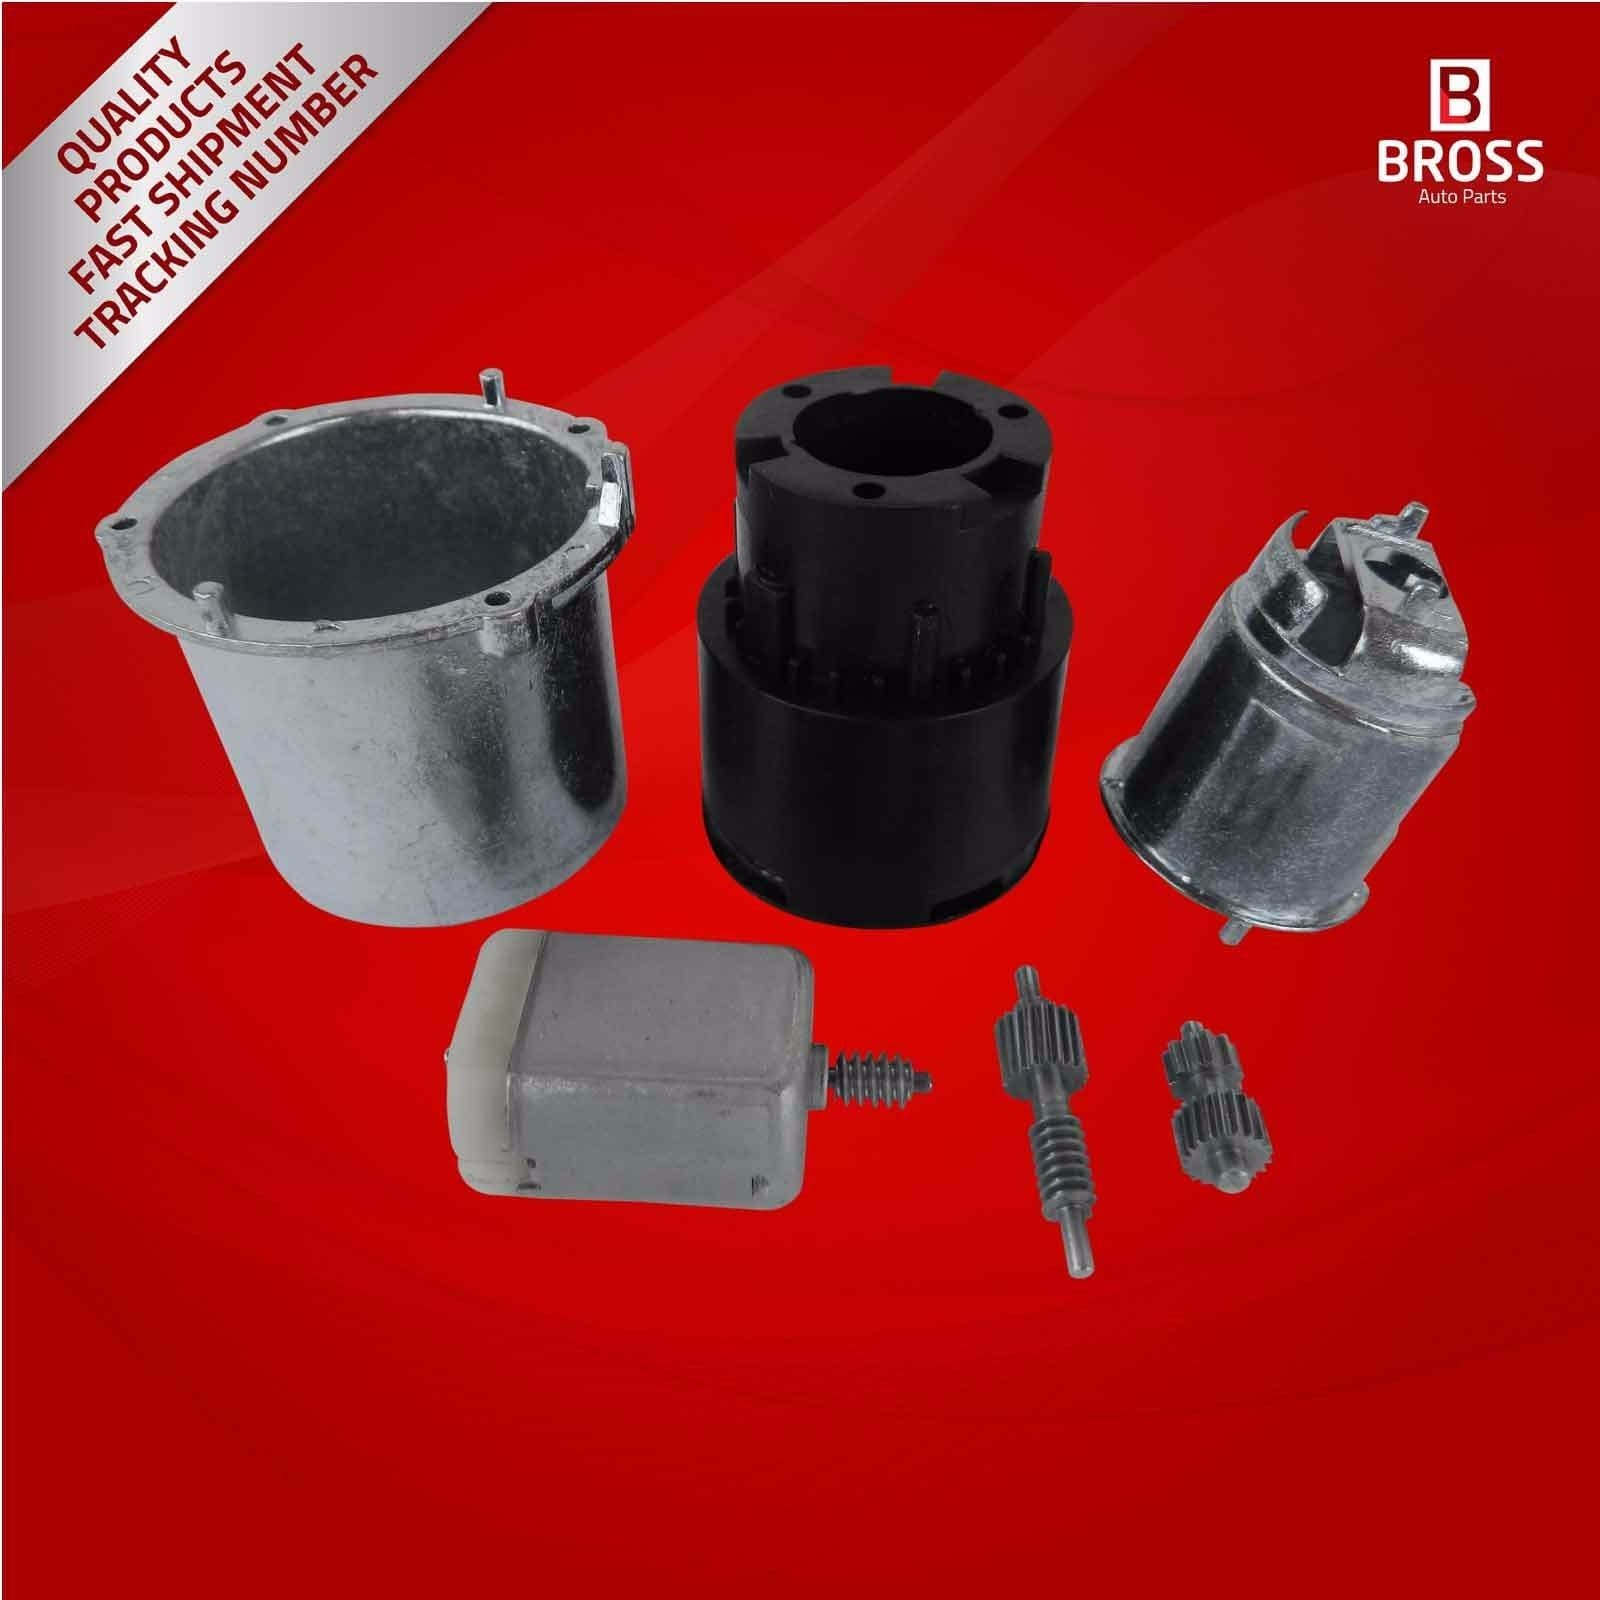 Quality Products From Turkey Expedited Shipment In 1 Day